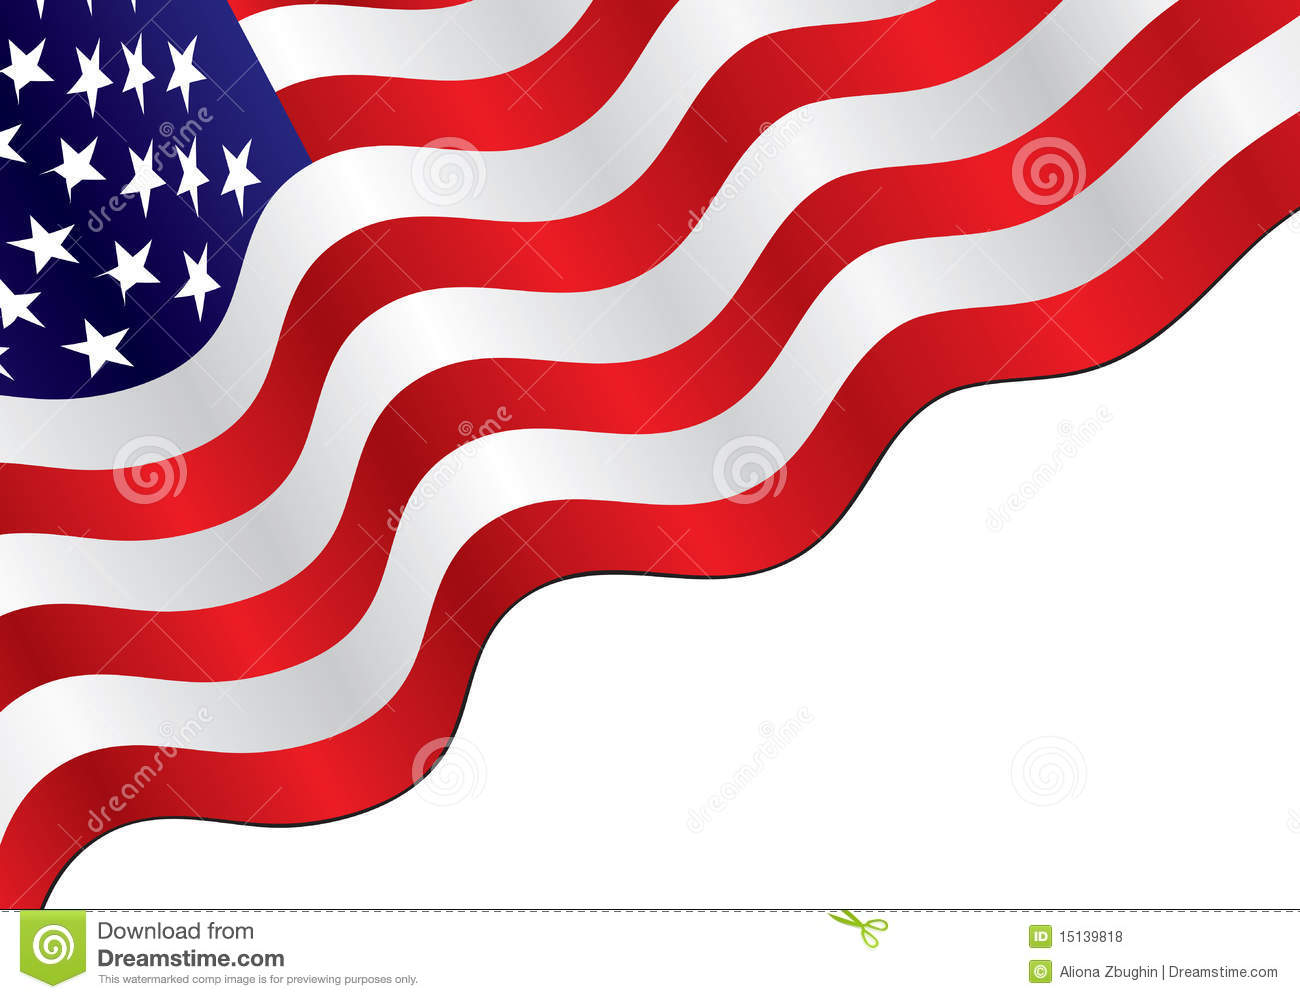 American Flag Background Royalty Free Stock Photos - Image: 15139818